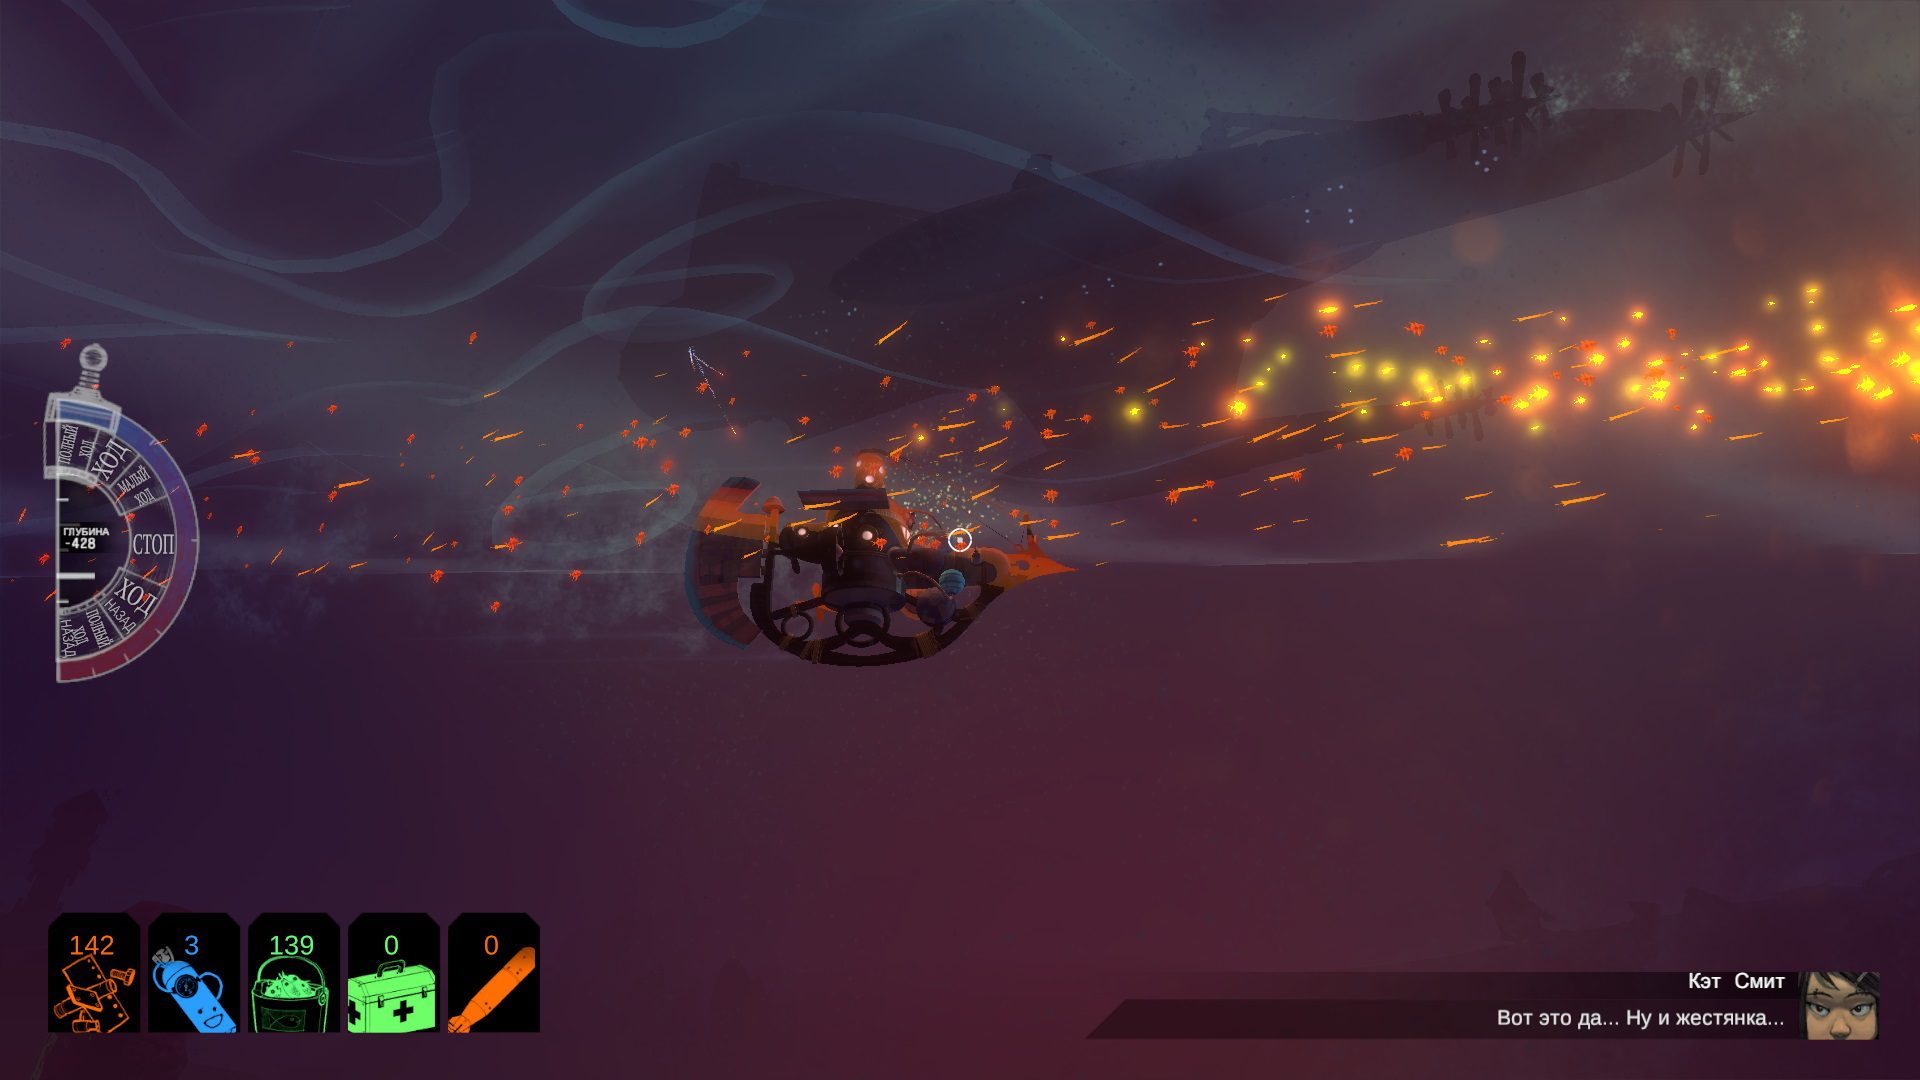 Diluvion_7